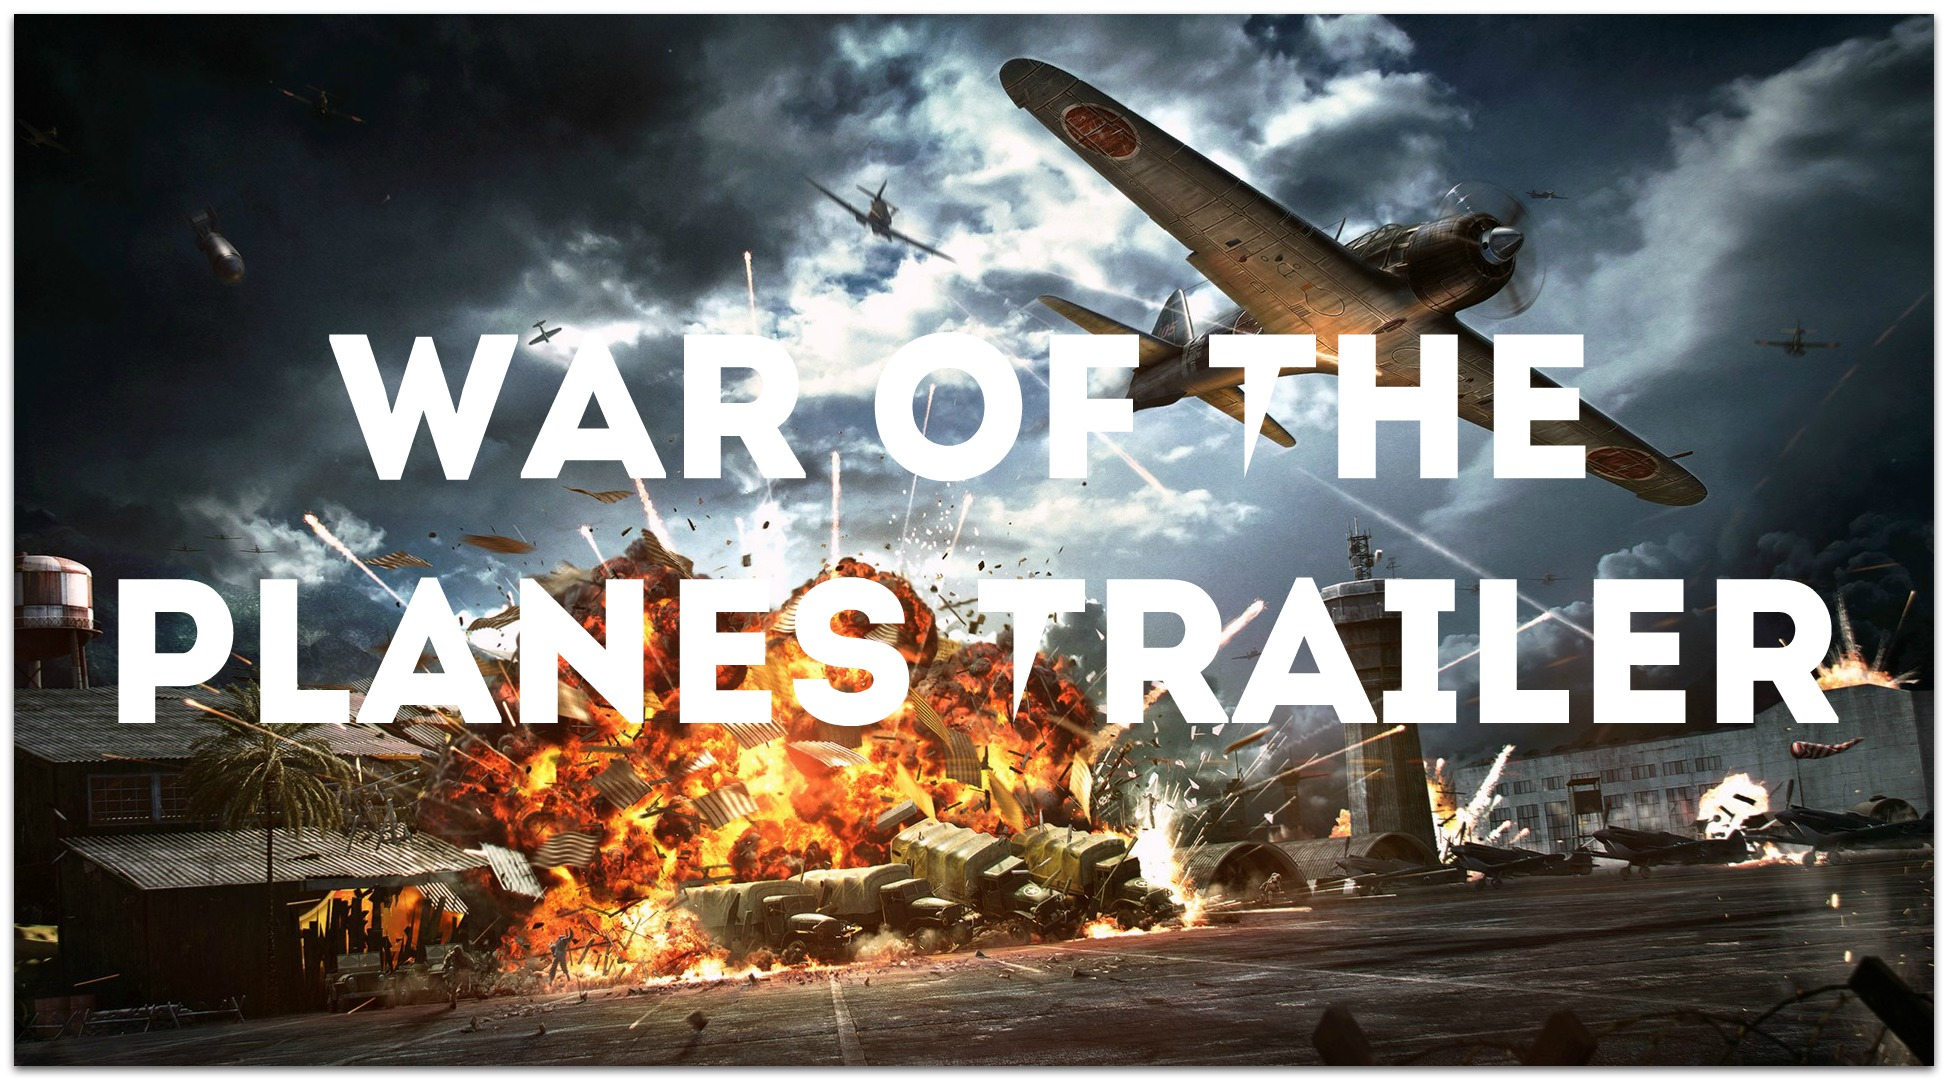 War Of the Planes Trailer - 1